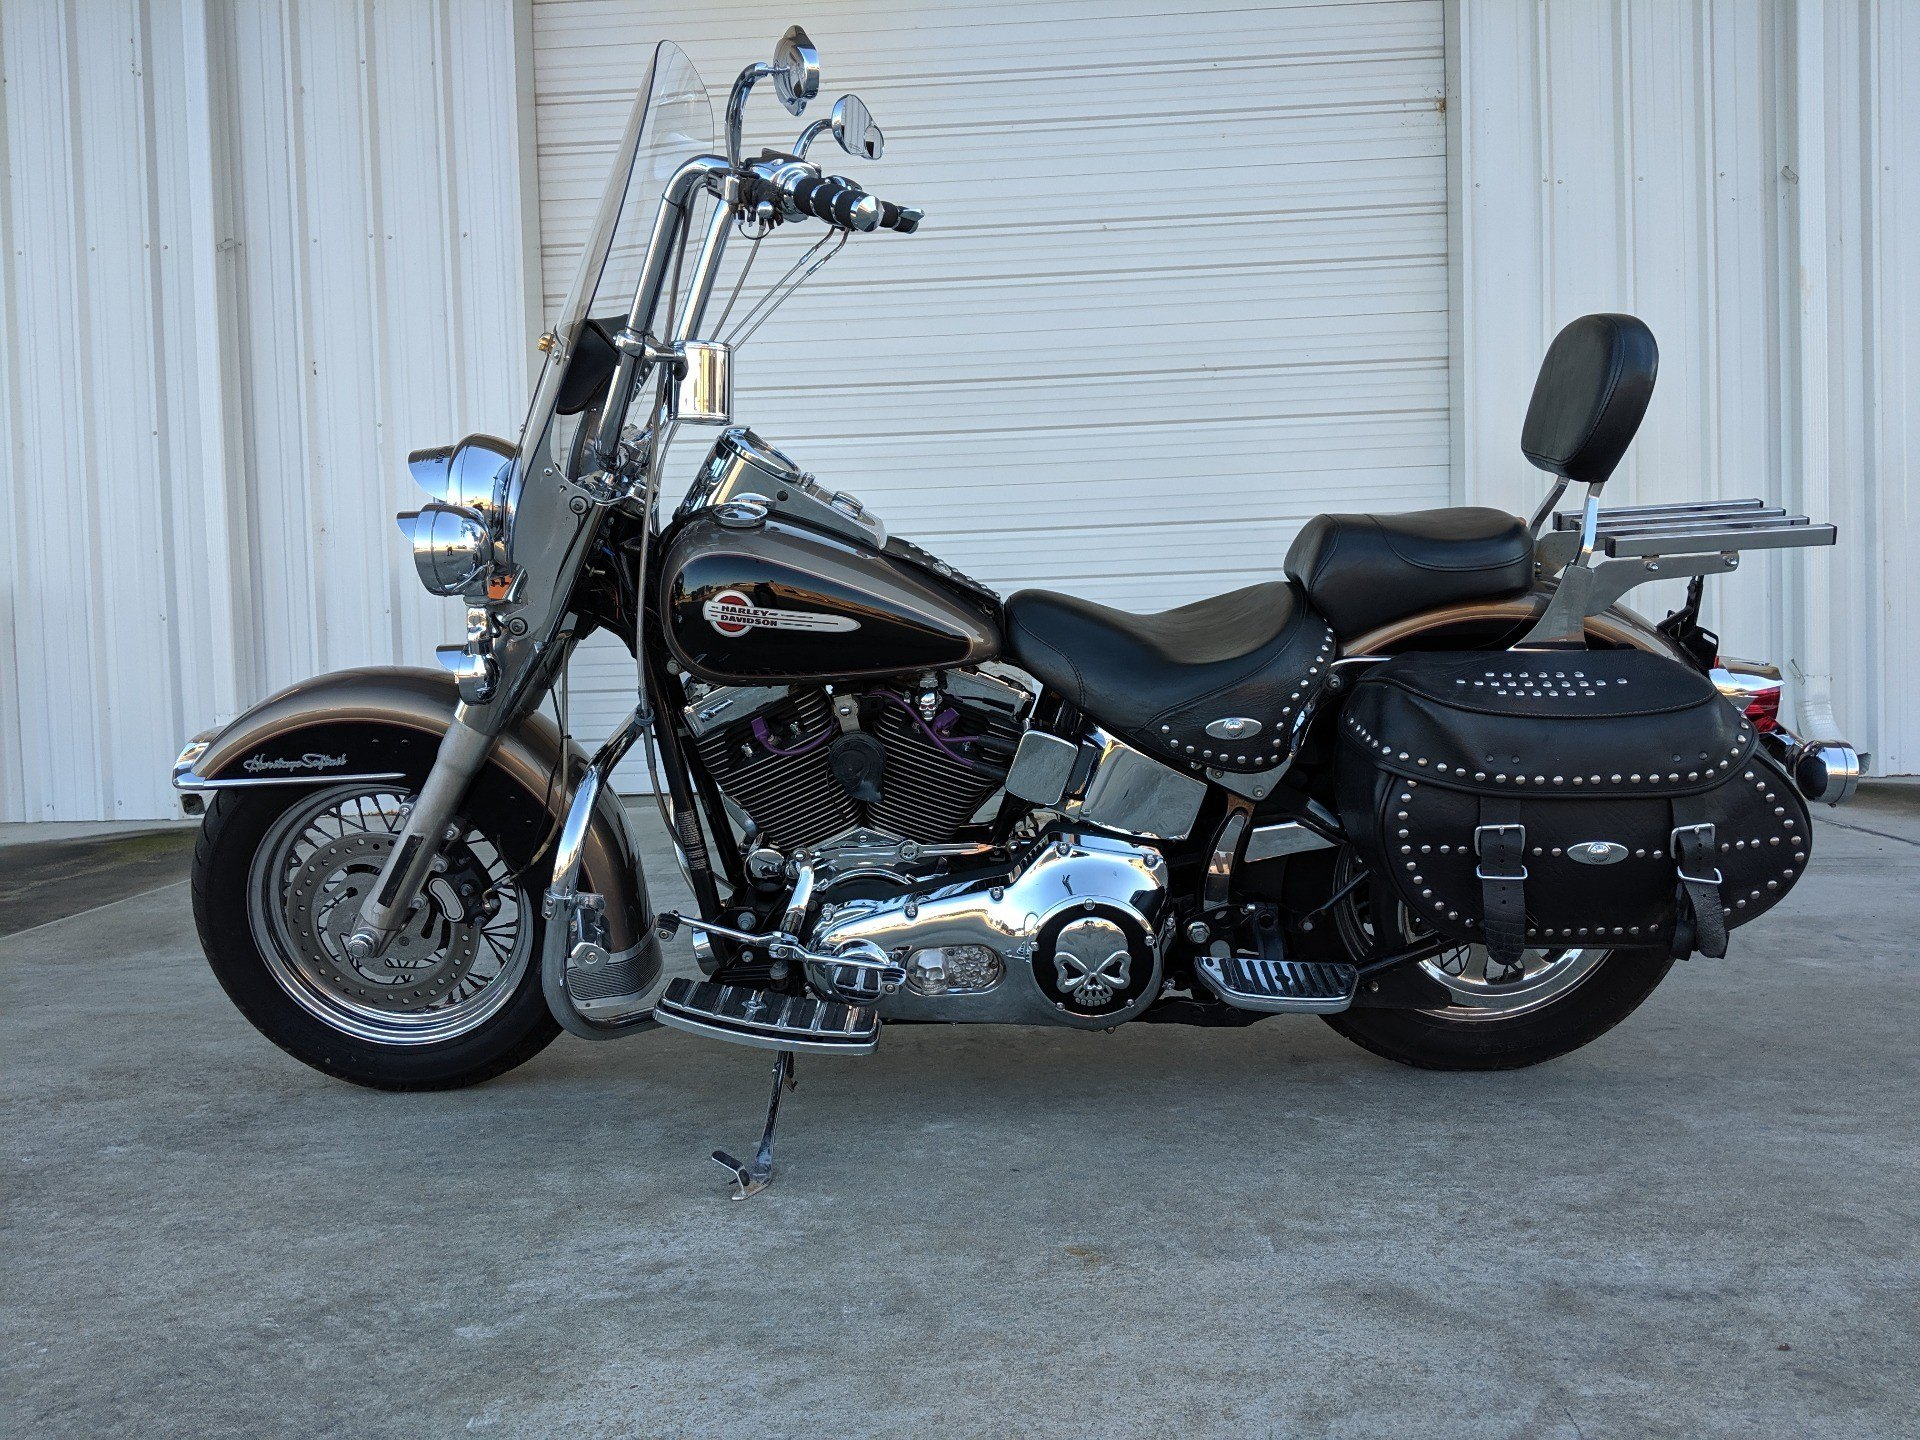 2004 Harley-Davidson FLSTC/FLSTCI Heritage Softail® Classic in Monroe, Louisiana - Photo 2